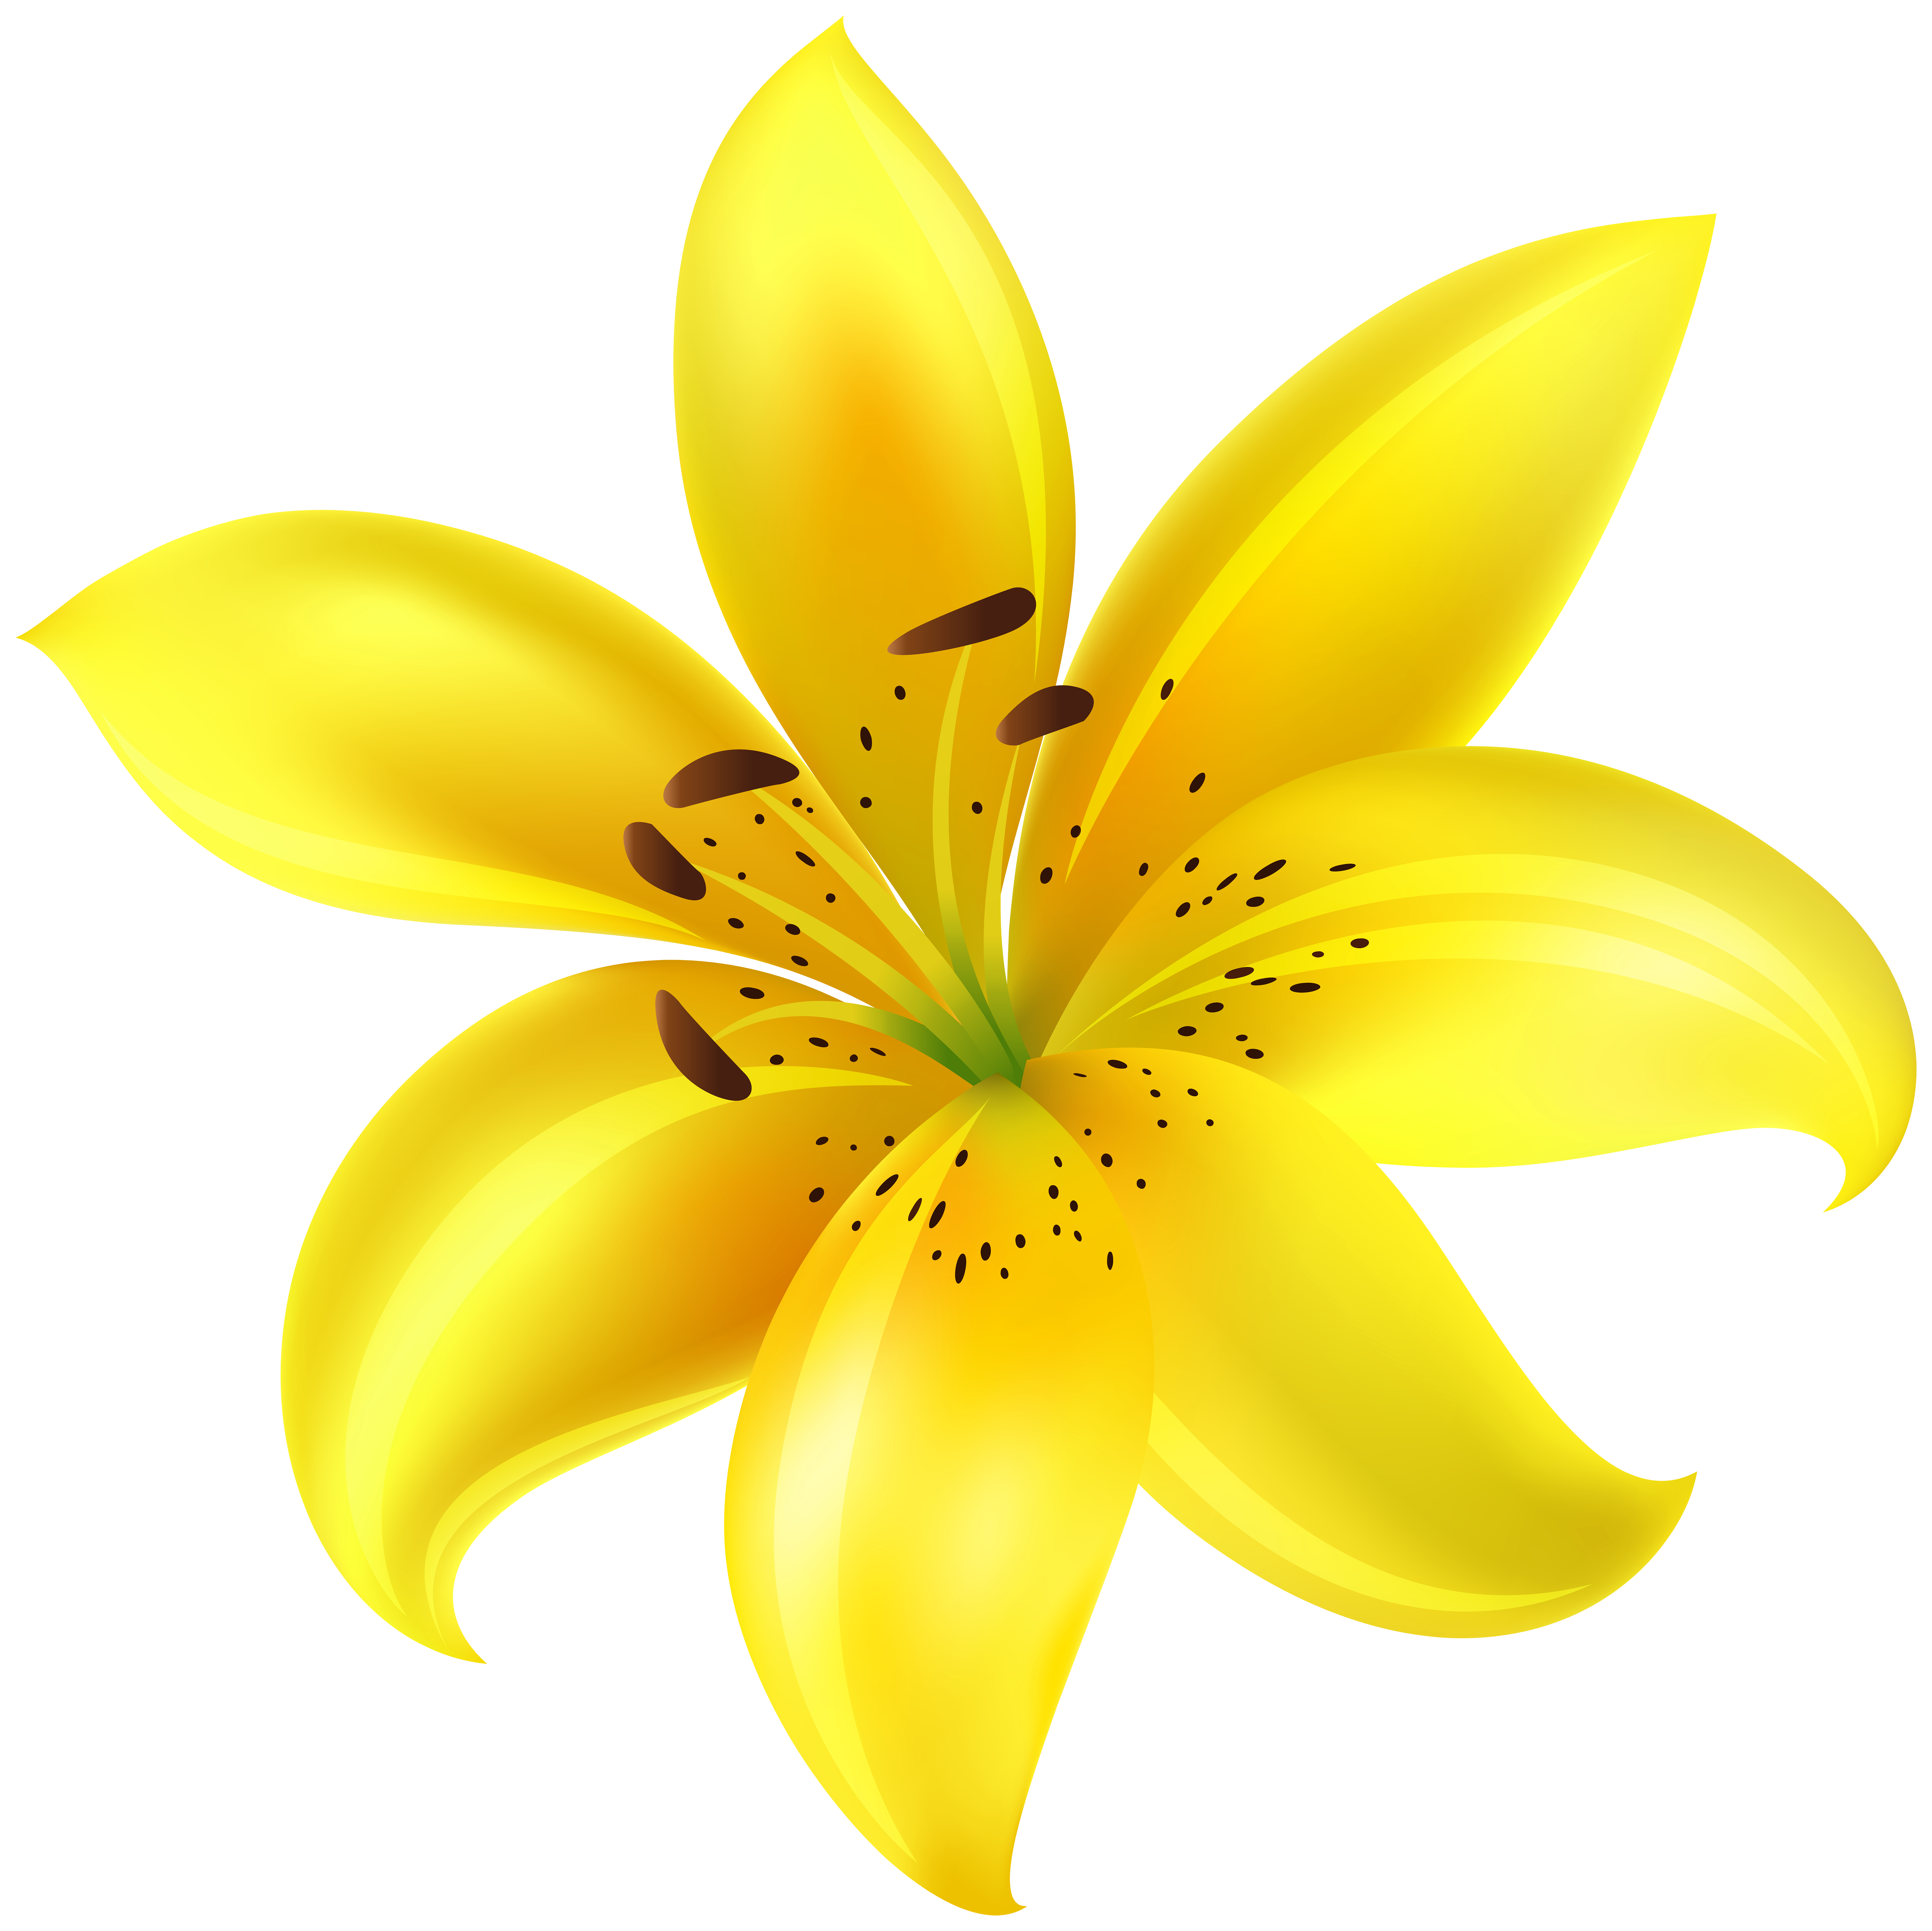 Clipart flower yellow png library Yellow Flower Clip Art Image | Gallery Yopriceville - High-Quality ... png library